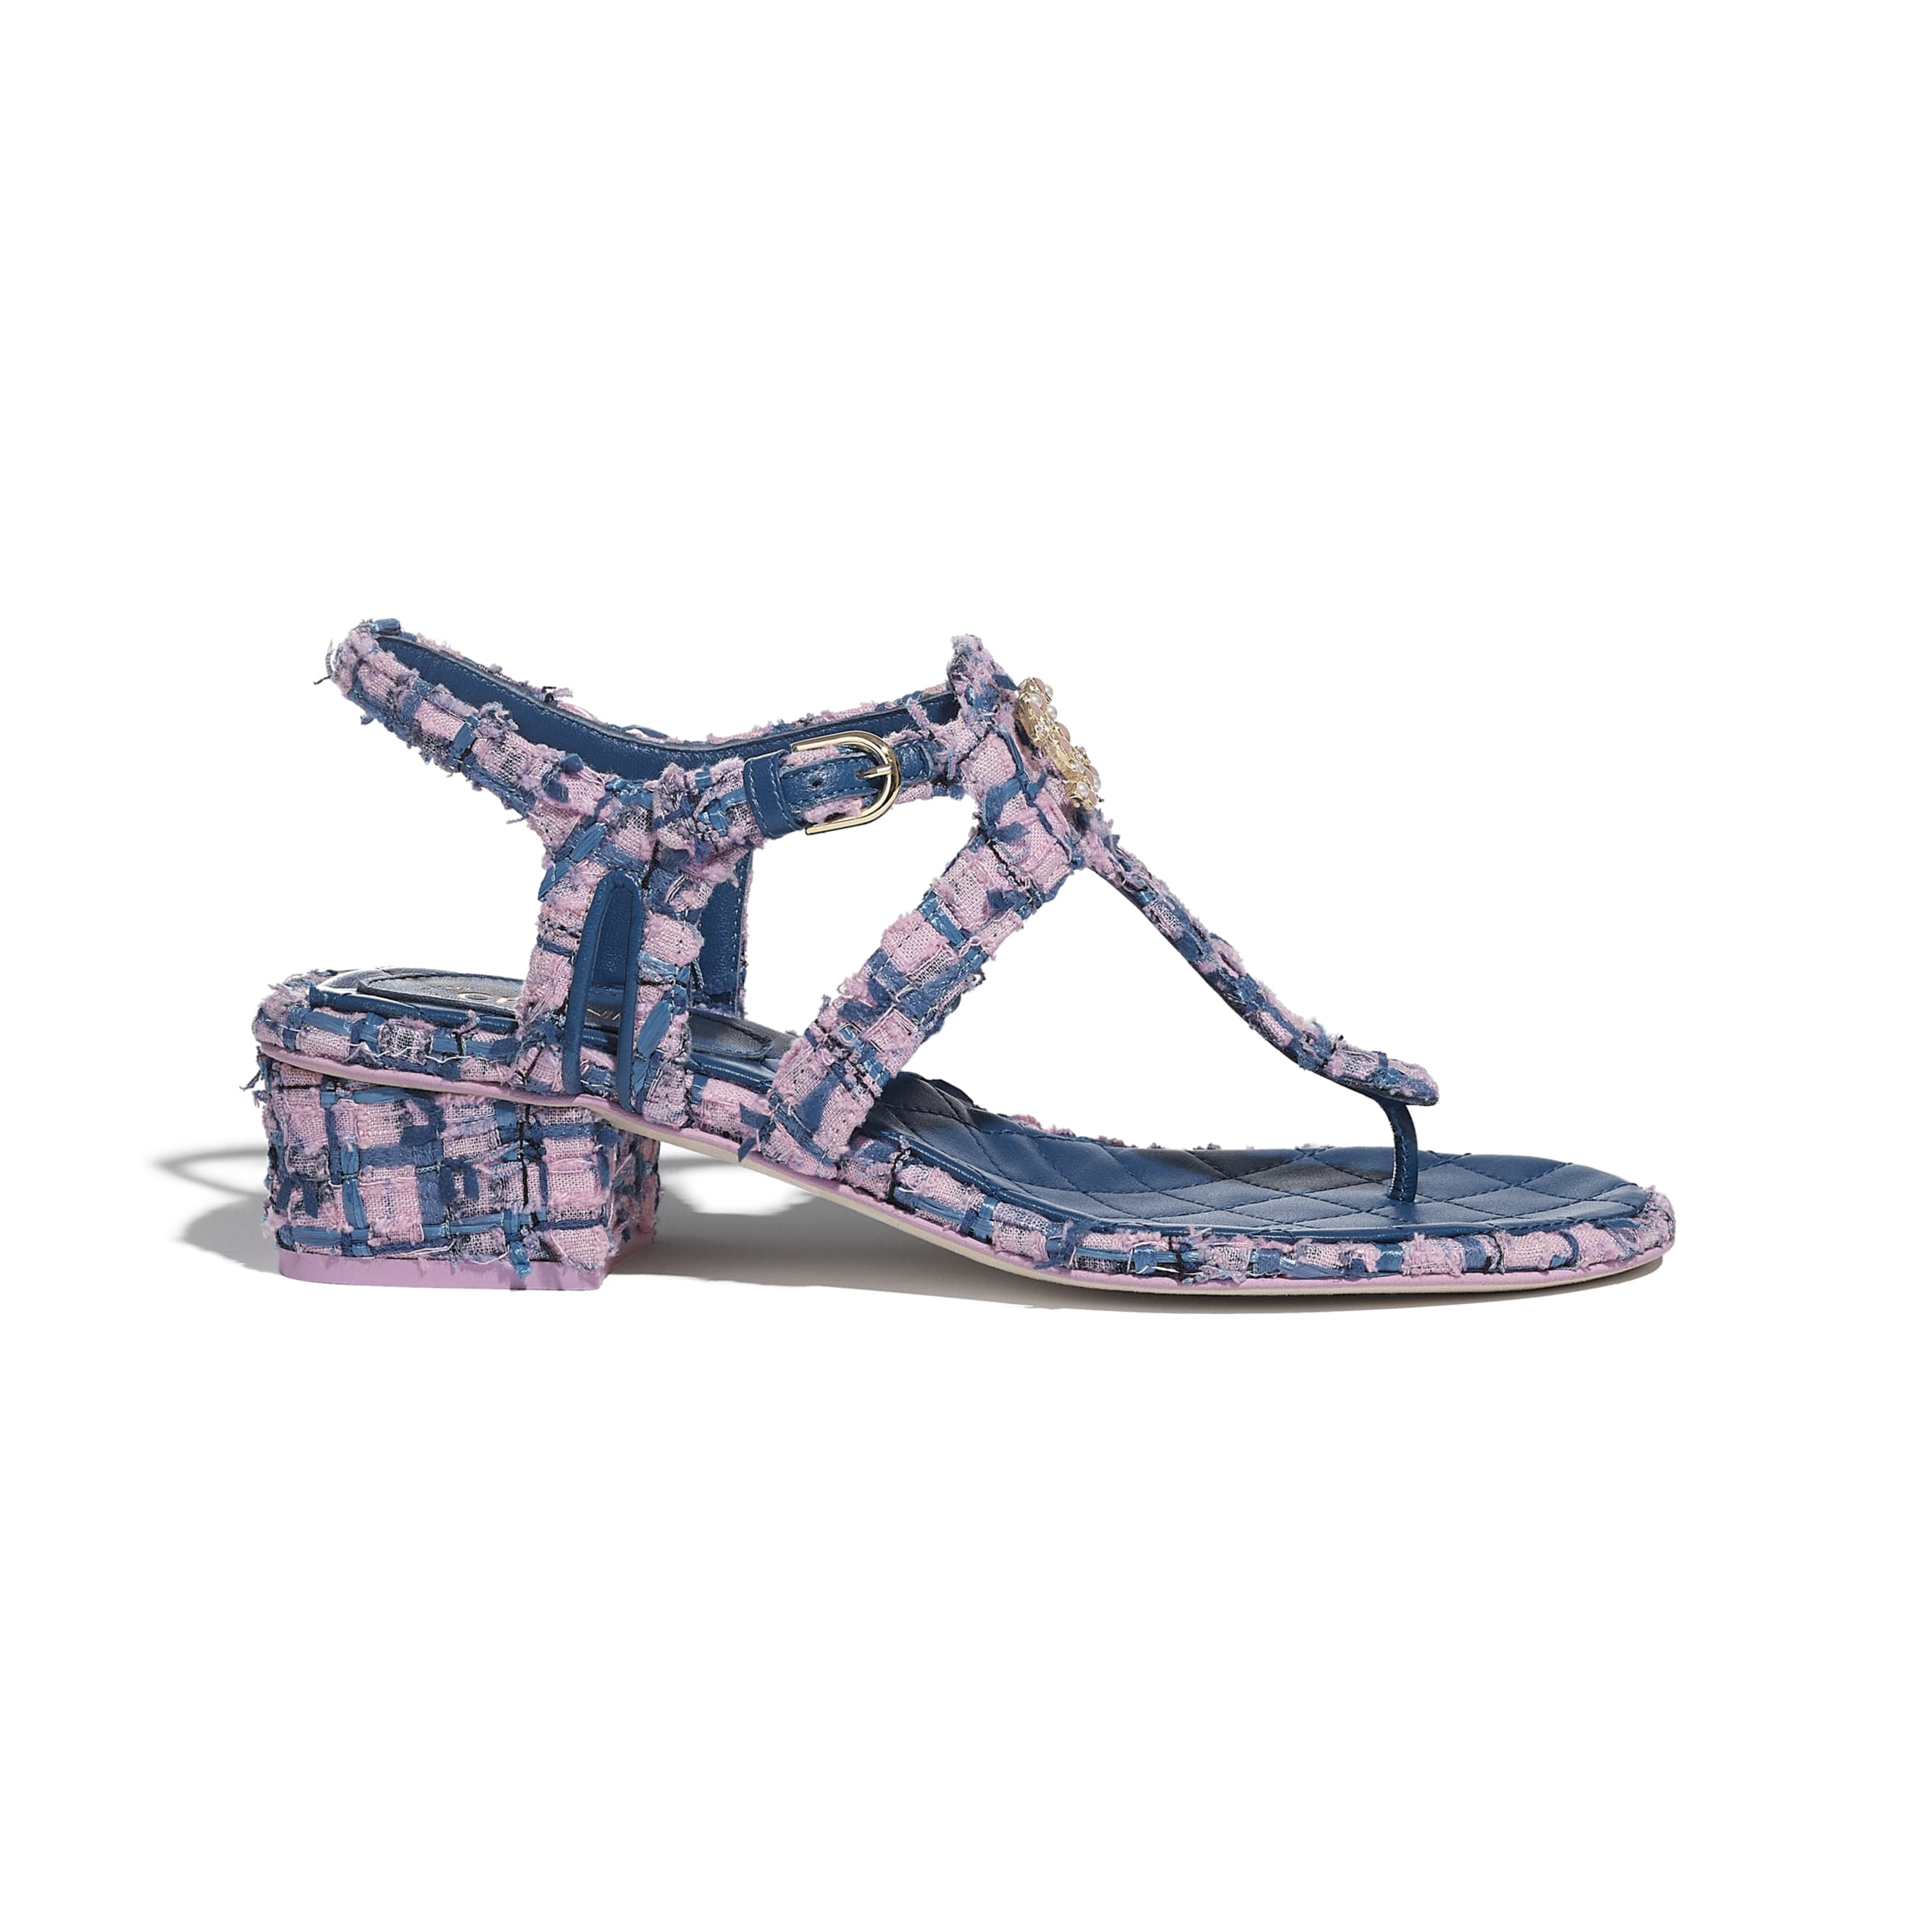 Sandals - Pink, Blue & Navy Blue - Tweed - CHANEL - Default view - see standard sized version